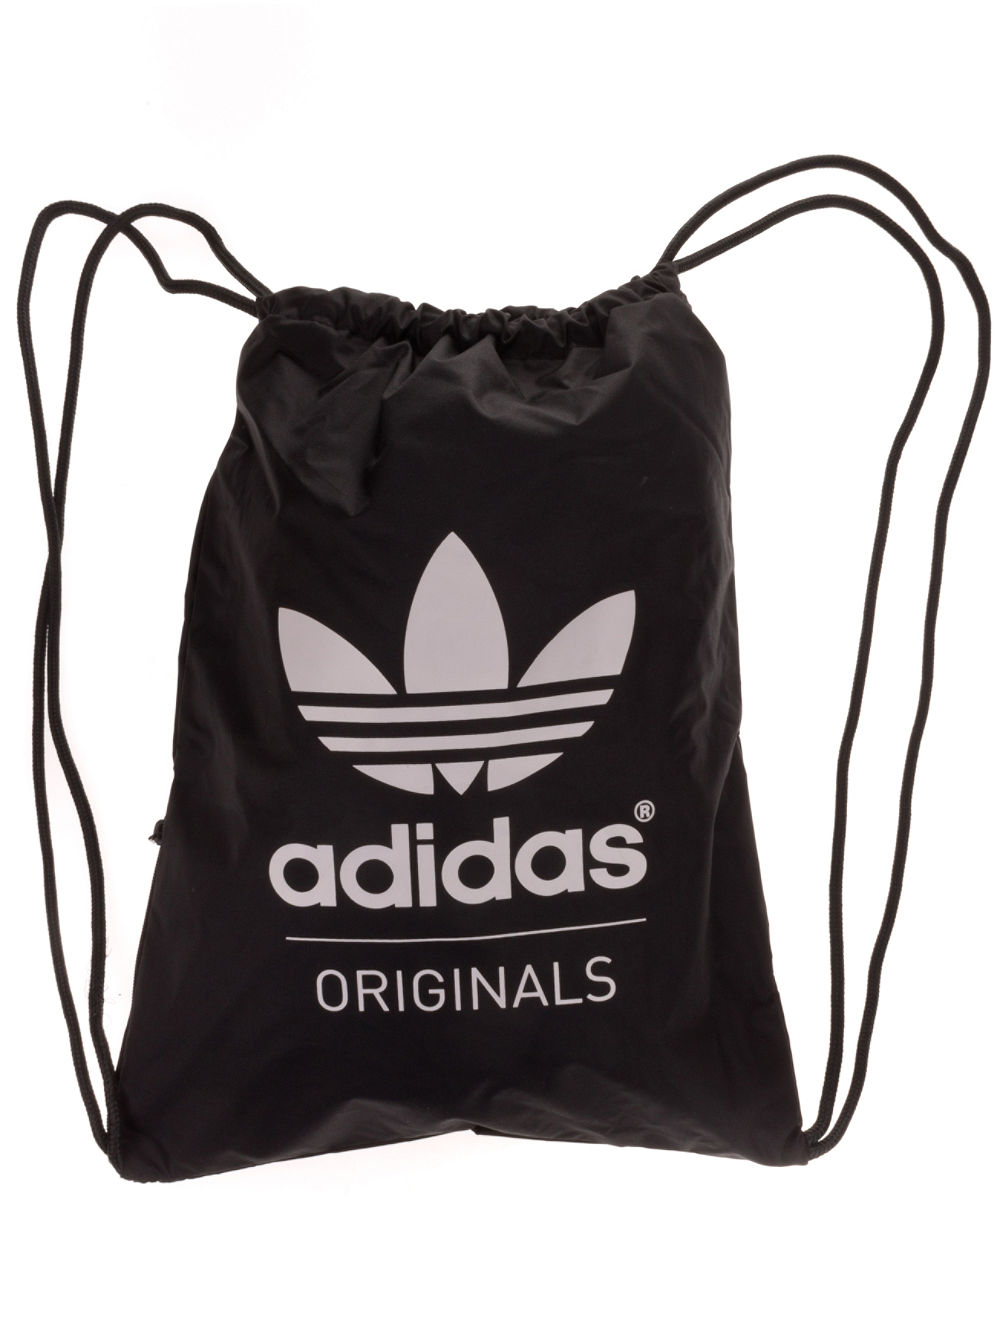 Buy adidas originals gymsack classic backpack online at blue tomato